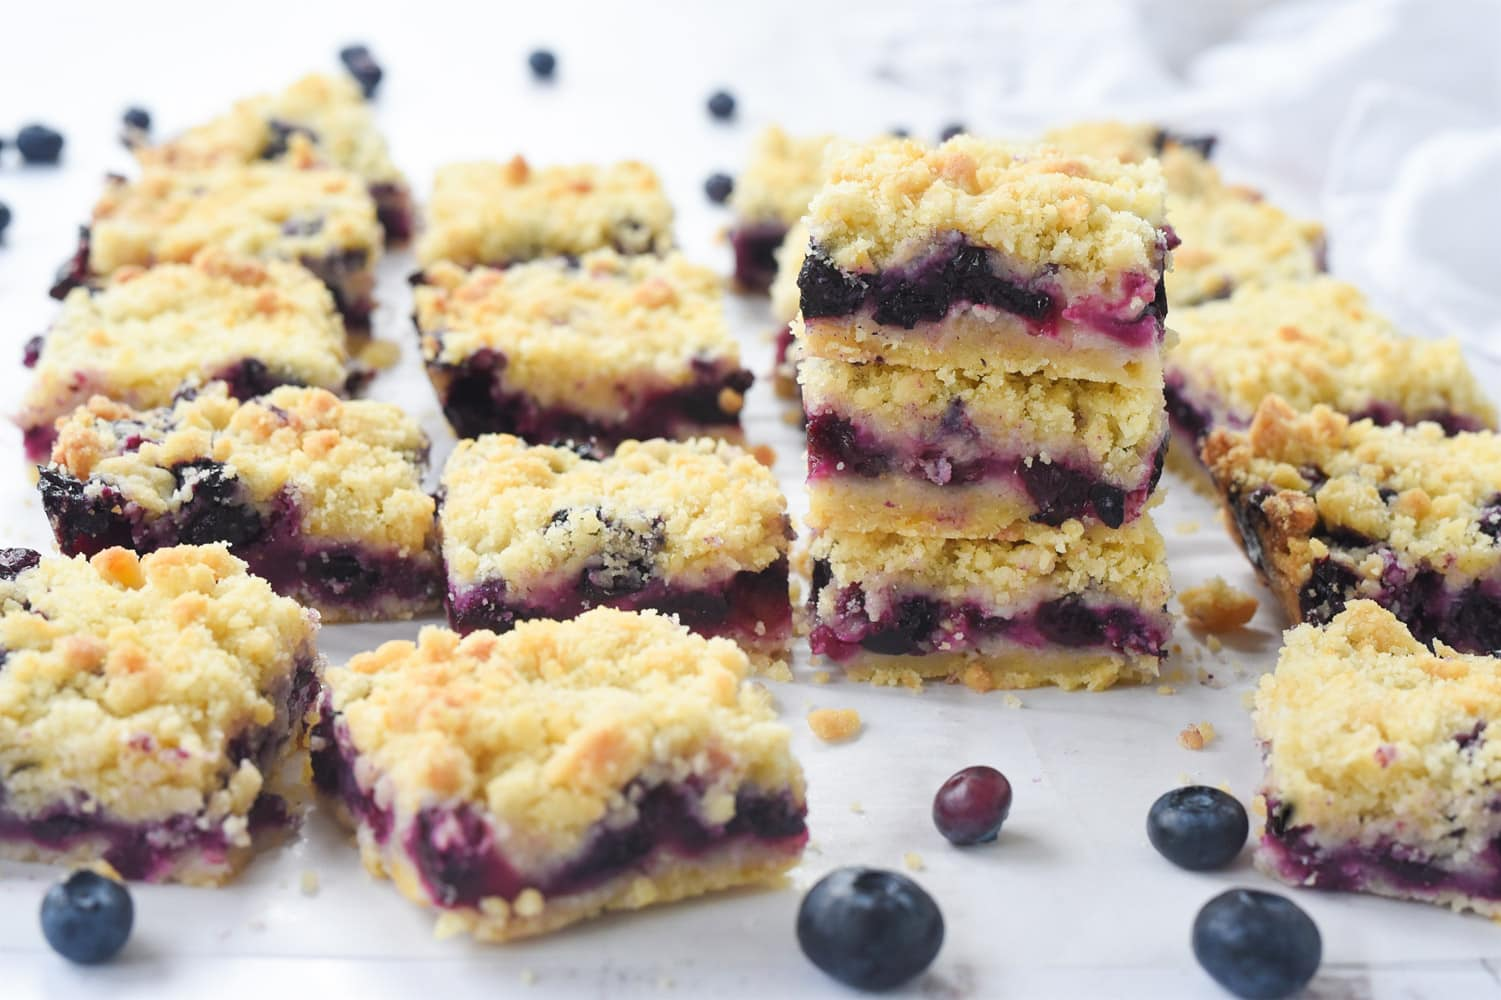 Pieces of blueberry crumble bars